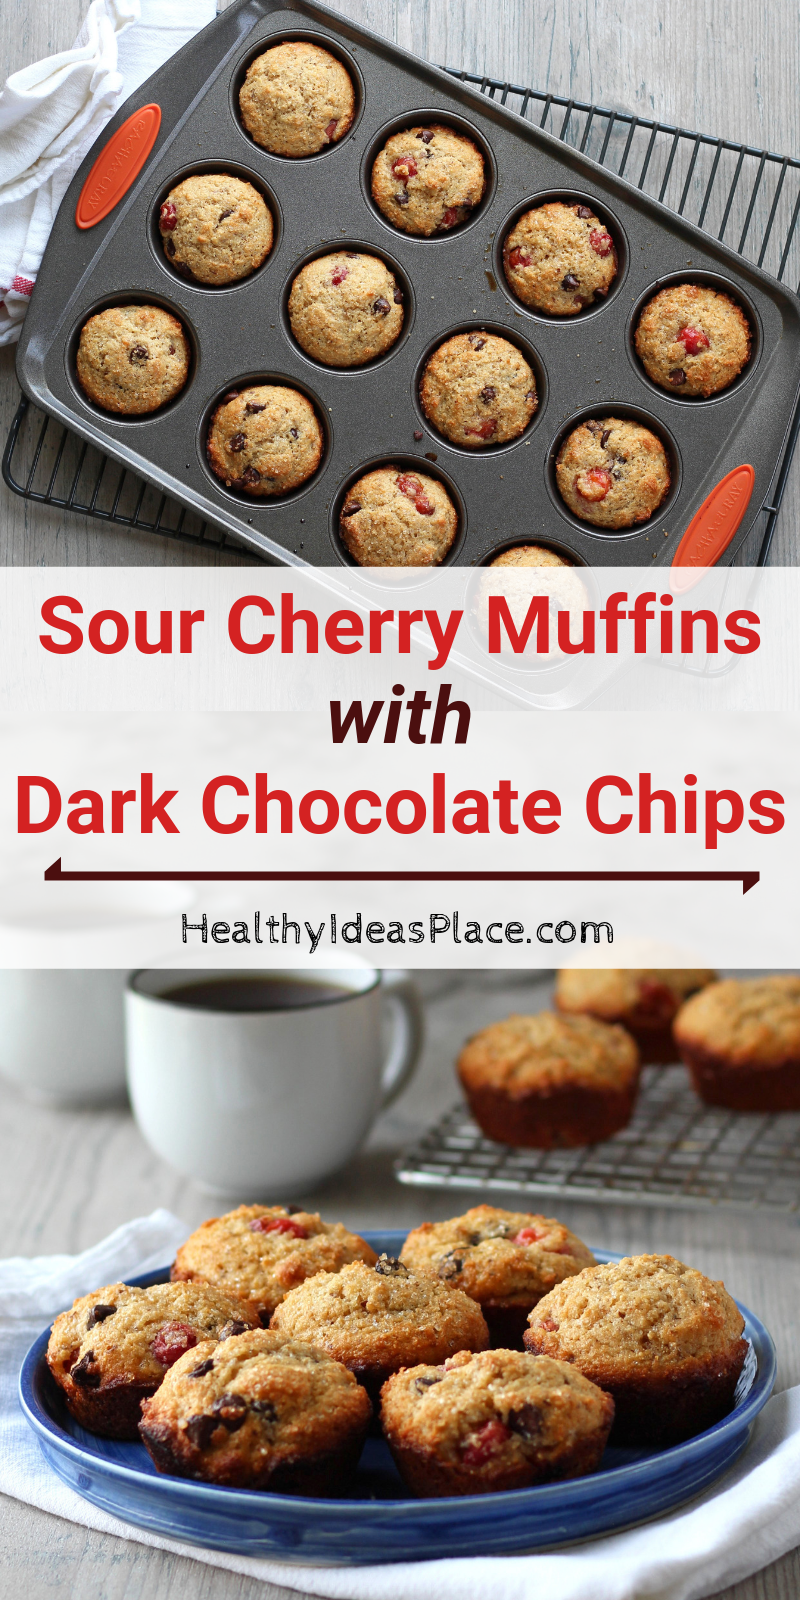 Collage picture of sour cherry muffins with dark chocolate chips